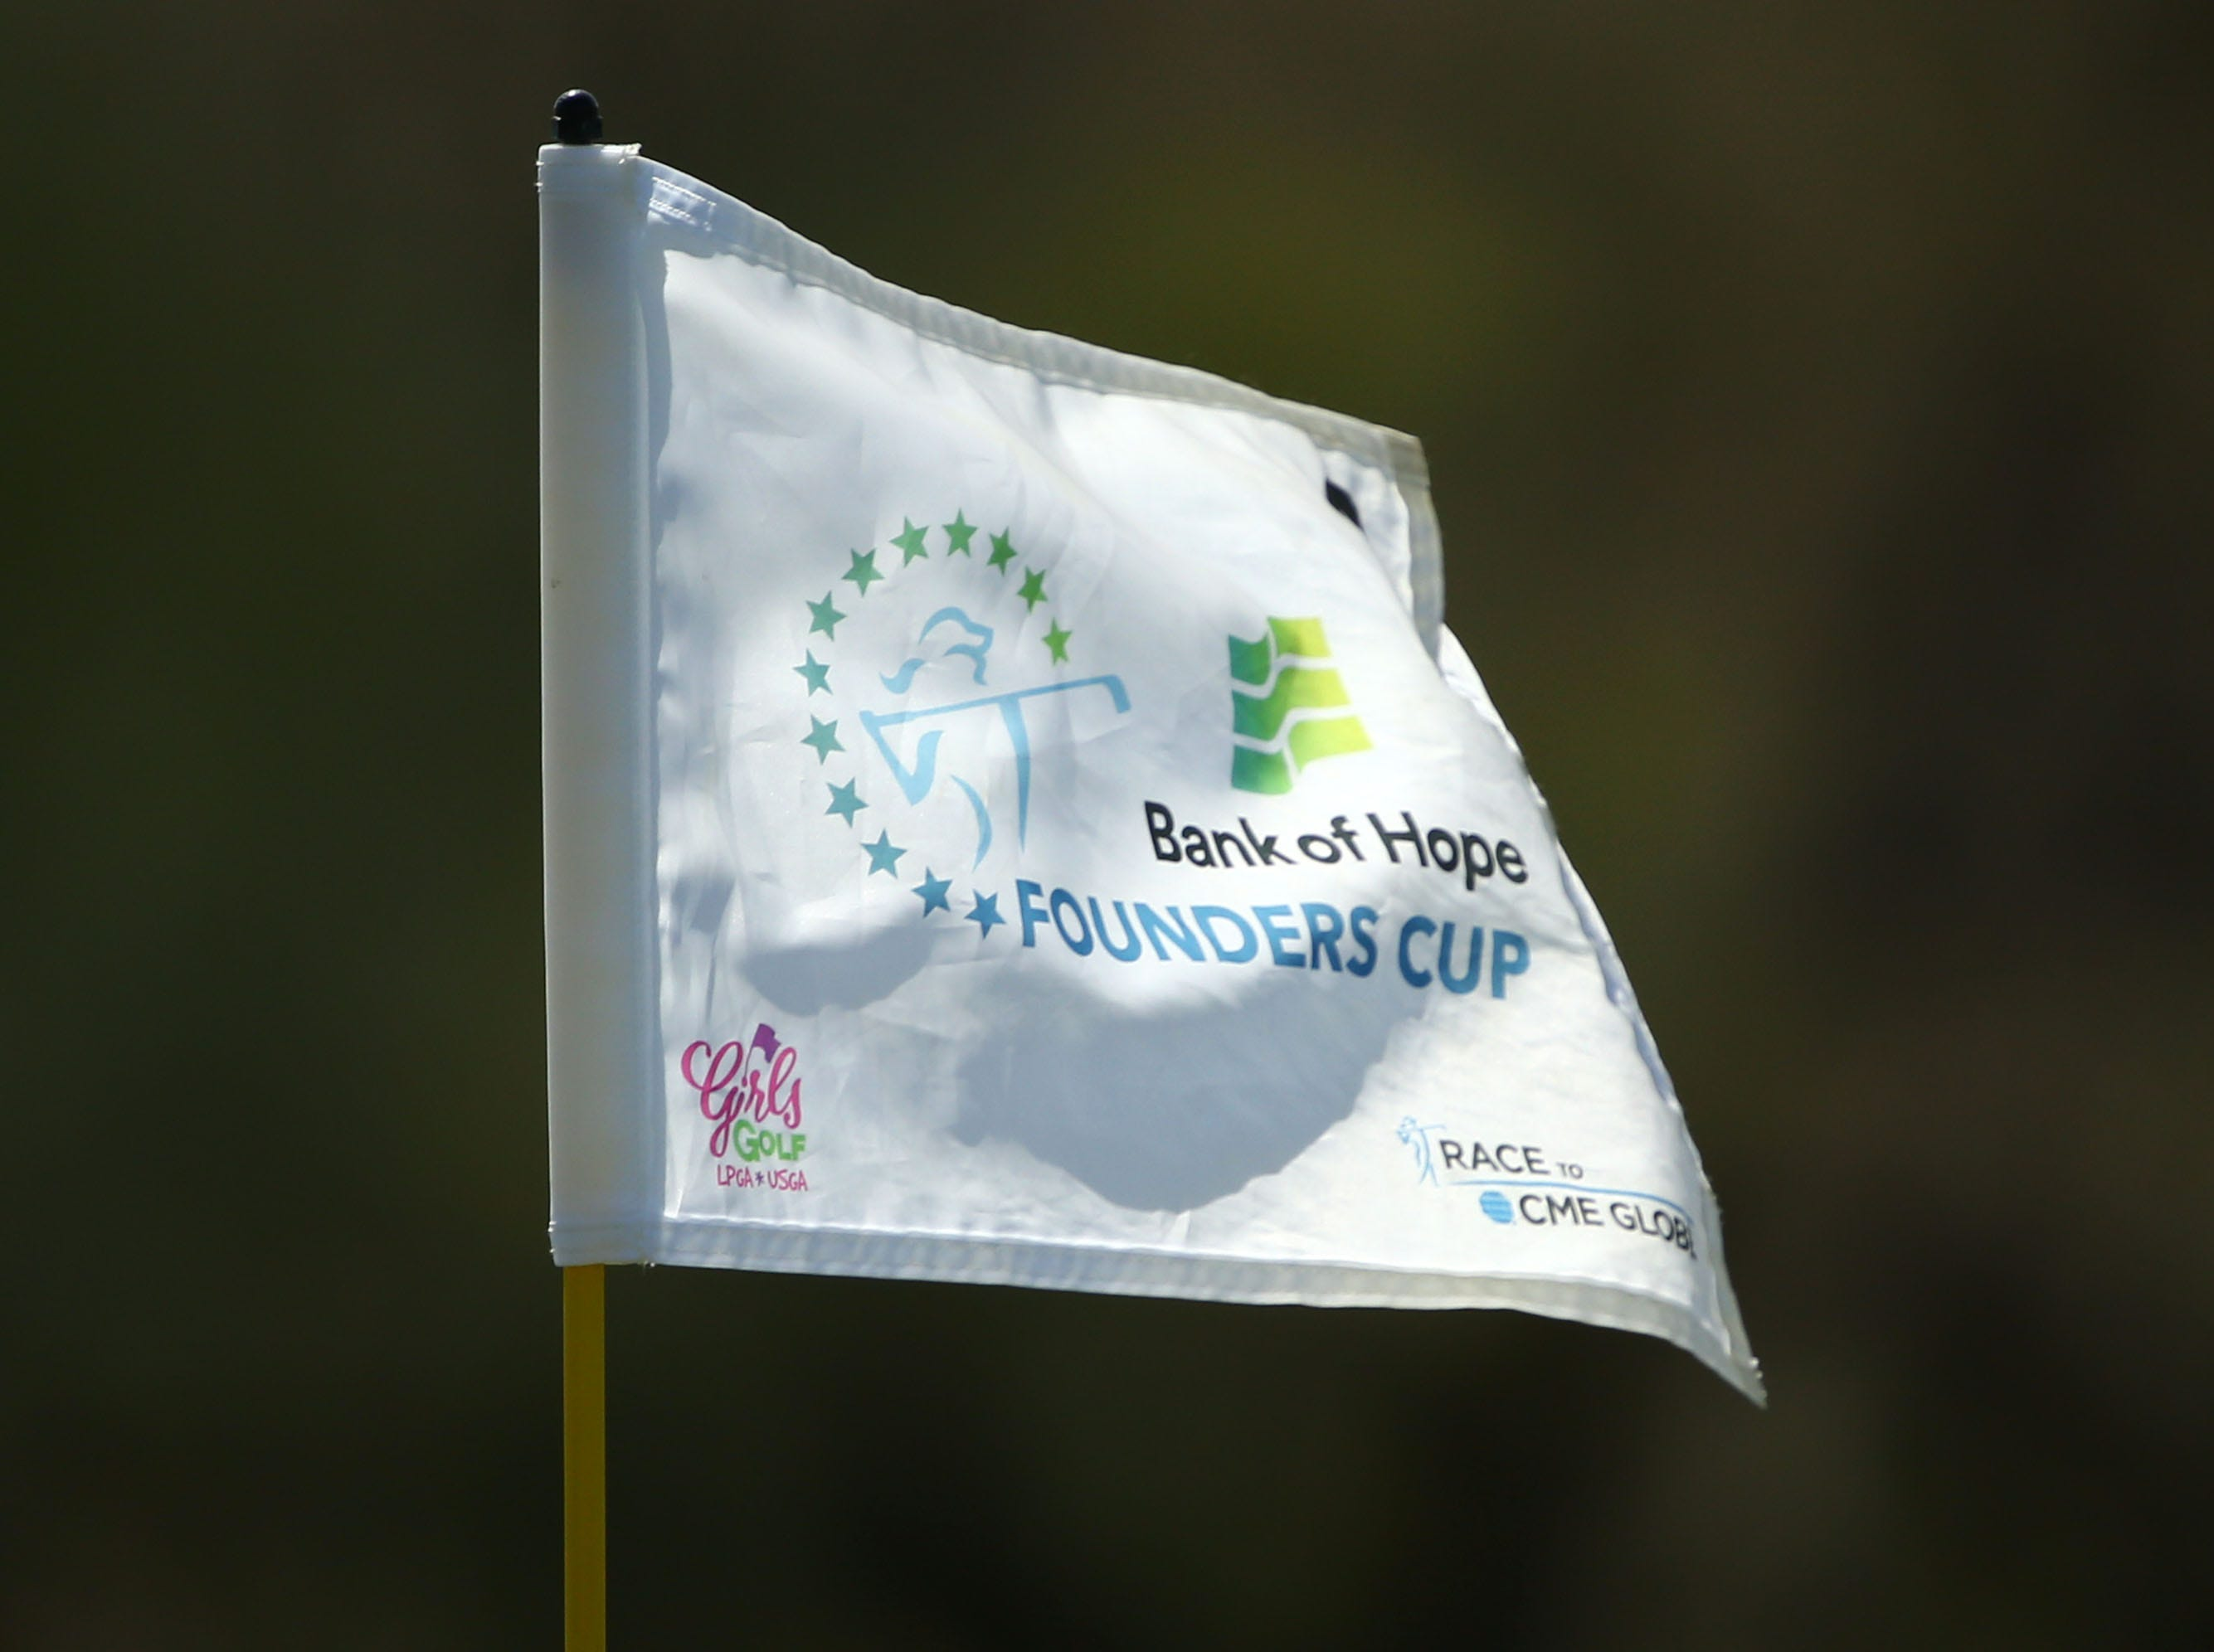 Bank of Hope Founders Cup flag on Mar. 24, 2019 at Wildfire Golf Club at JW Marriott in Phoenix, Ariz.